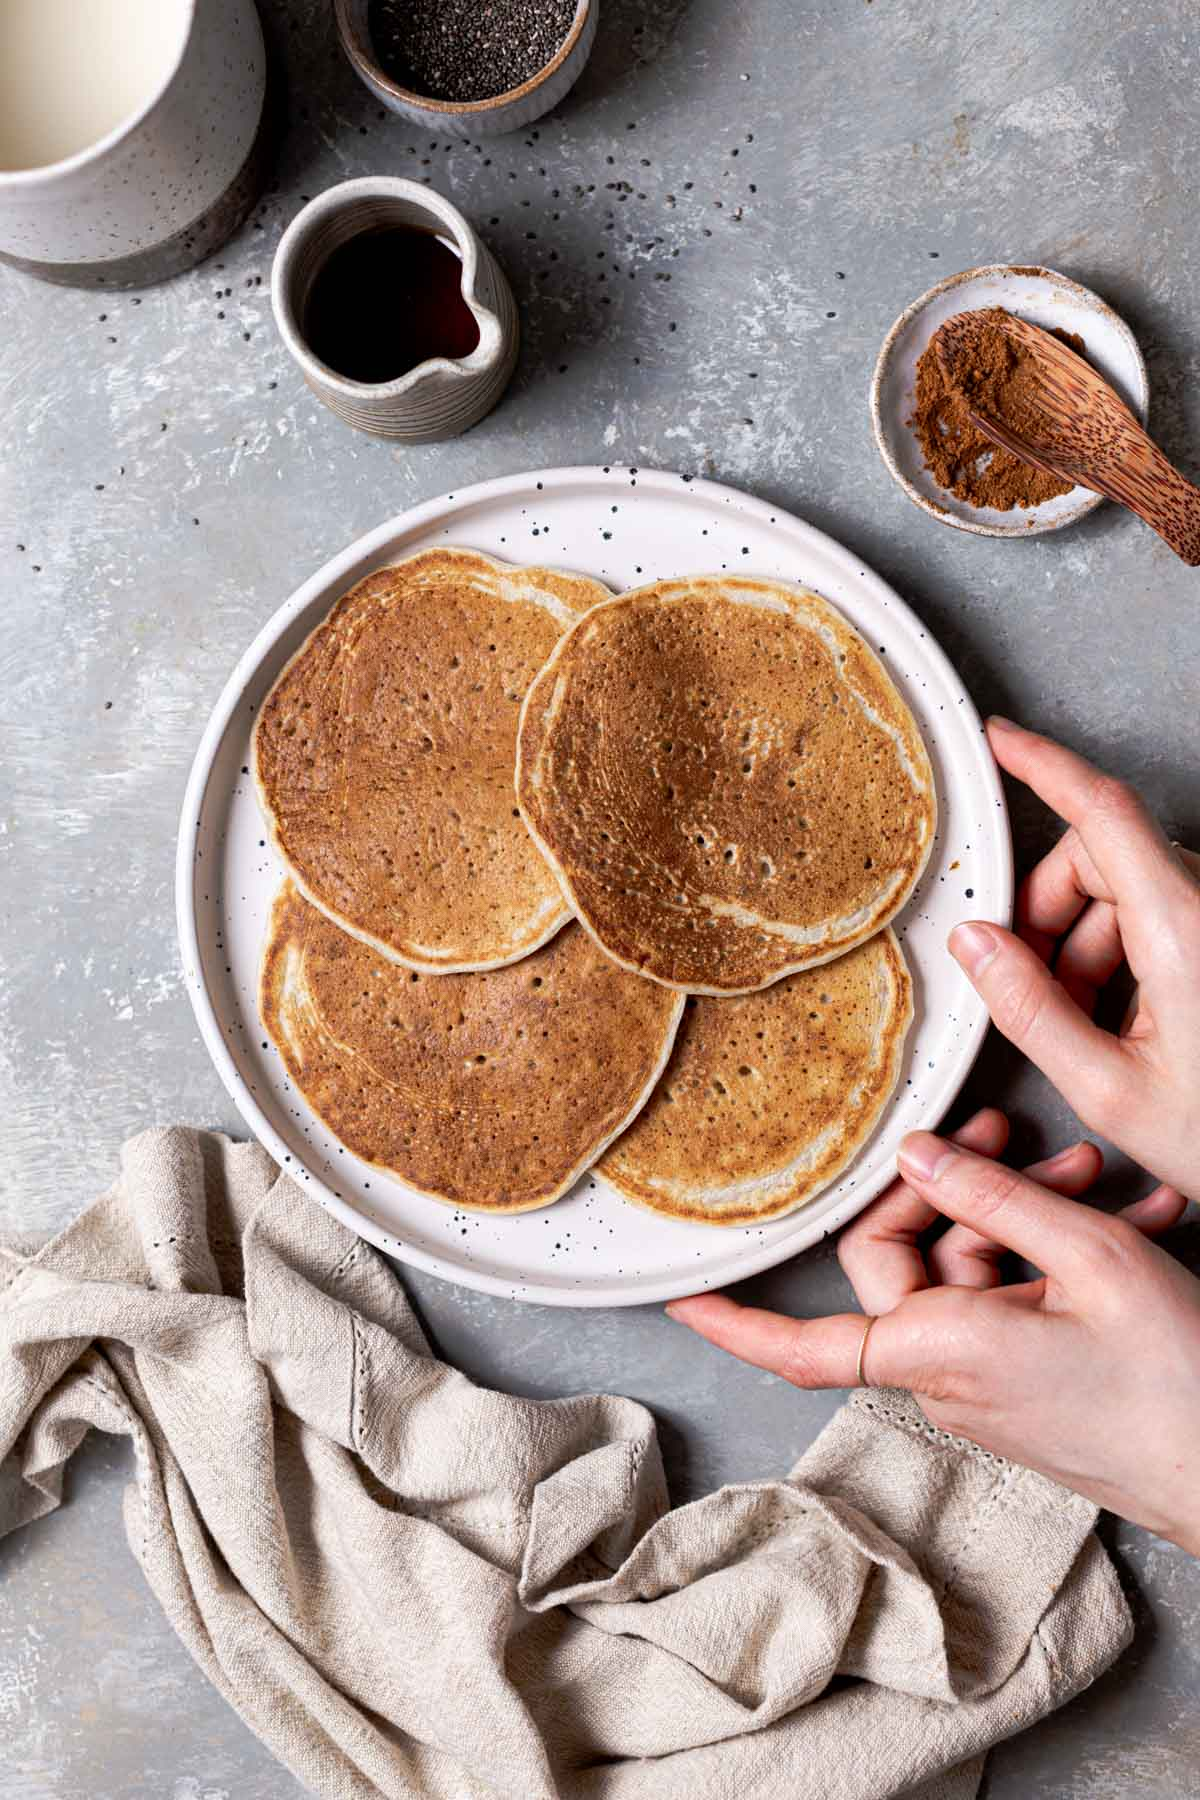 Four plain vegan pancakes on a white plate with two hands holding the sides and a piece of linen next to it.